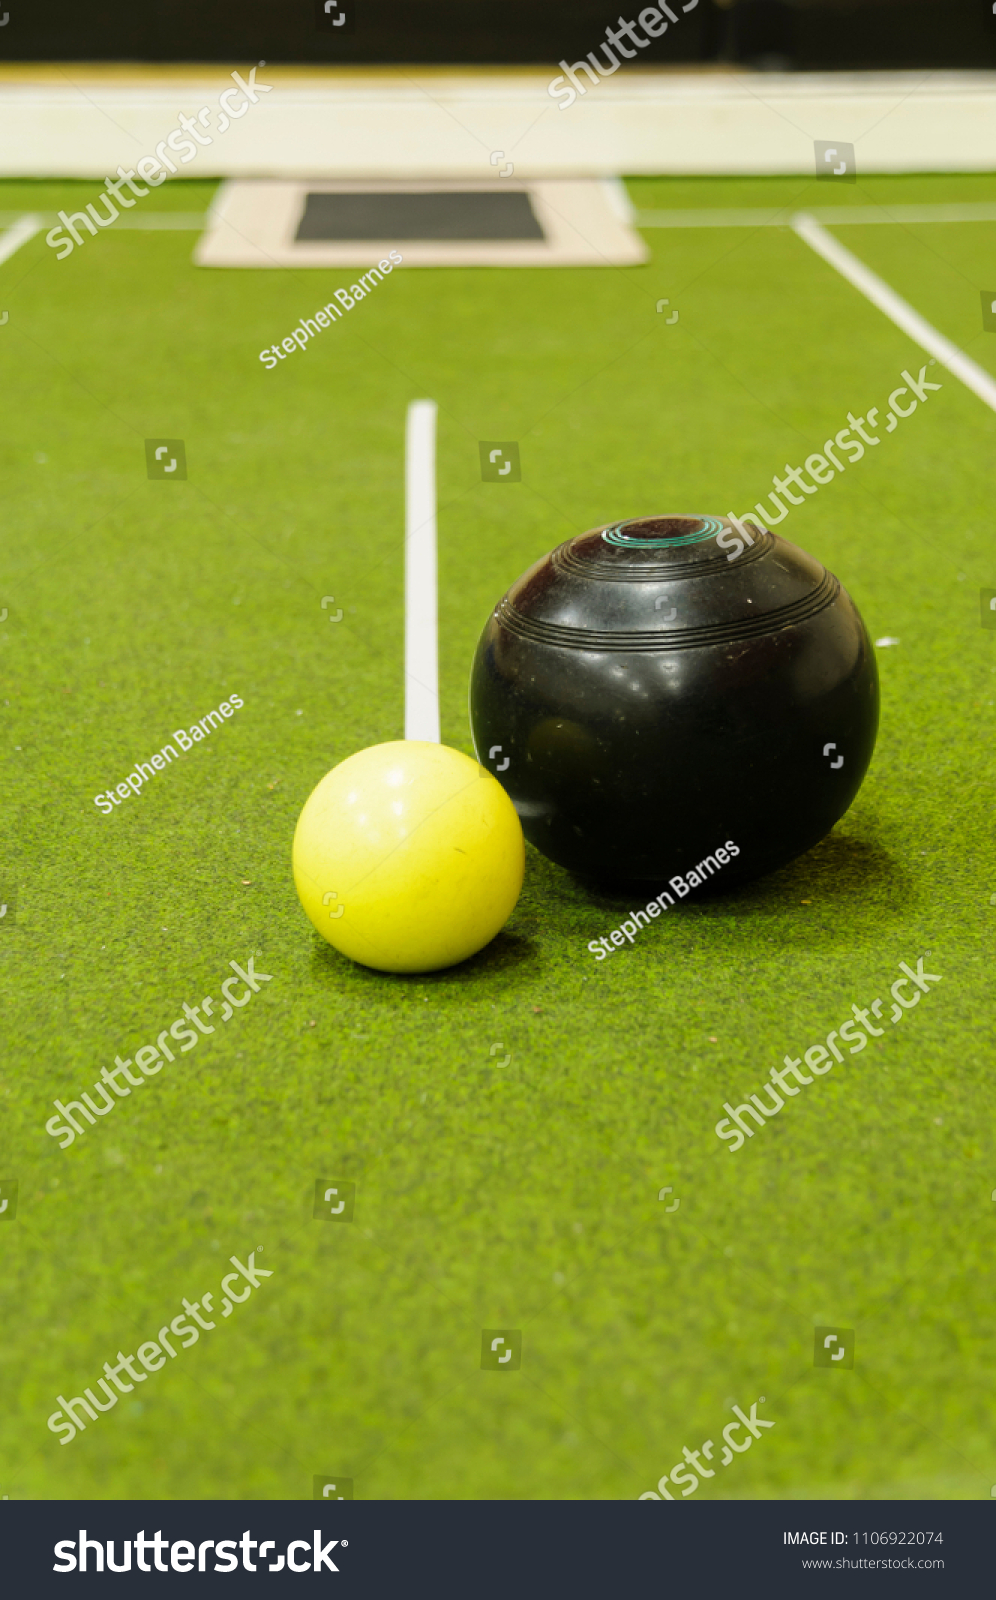 Bowl and jack on an indoor bowls carpet #1106922074